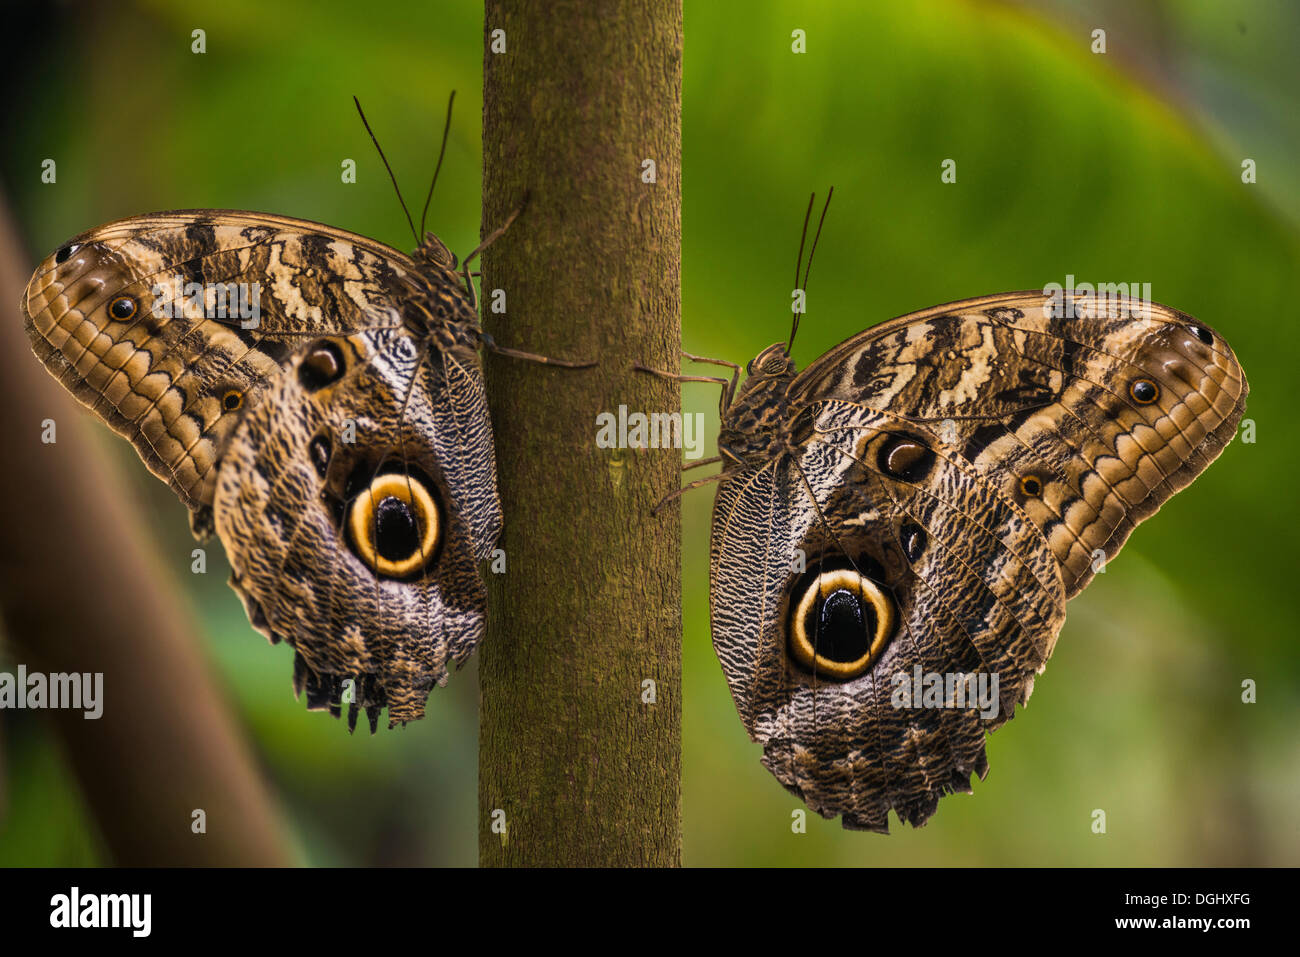 Two Forest Giant Owl butterflies (Caligo eurilochus), perched on a branch opposite each other, Manaus, Amazonas State, Brazil - Stock Image